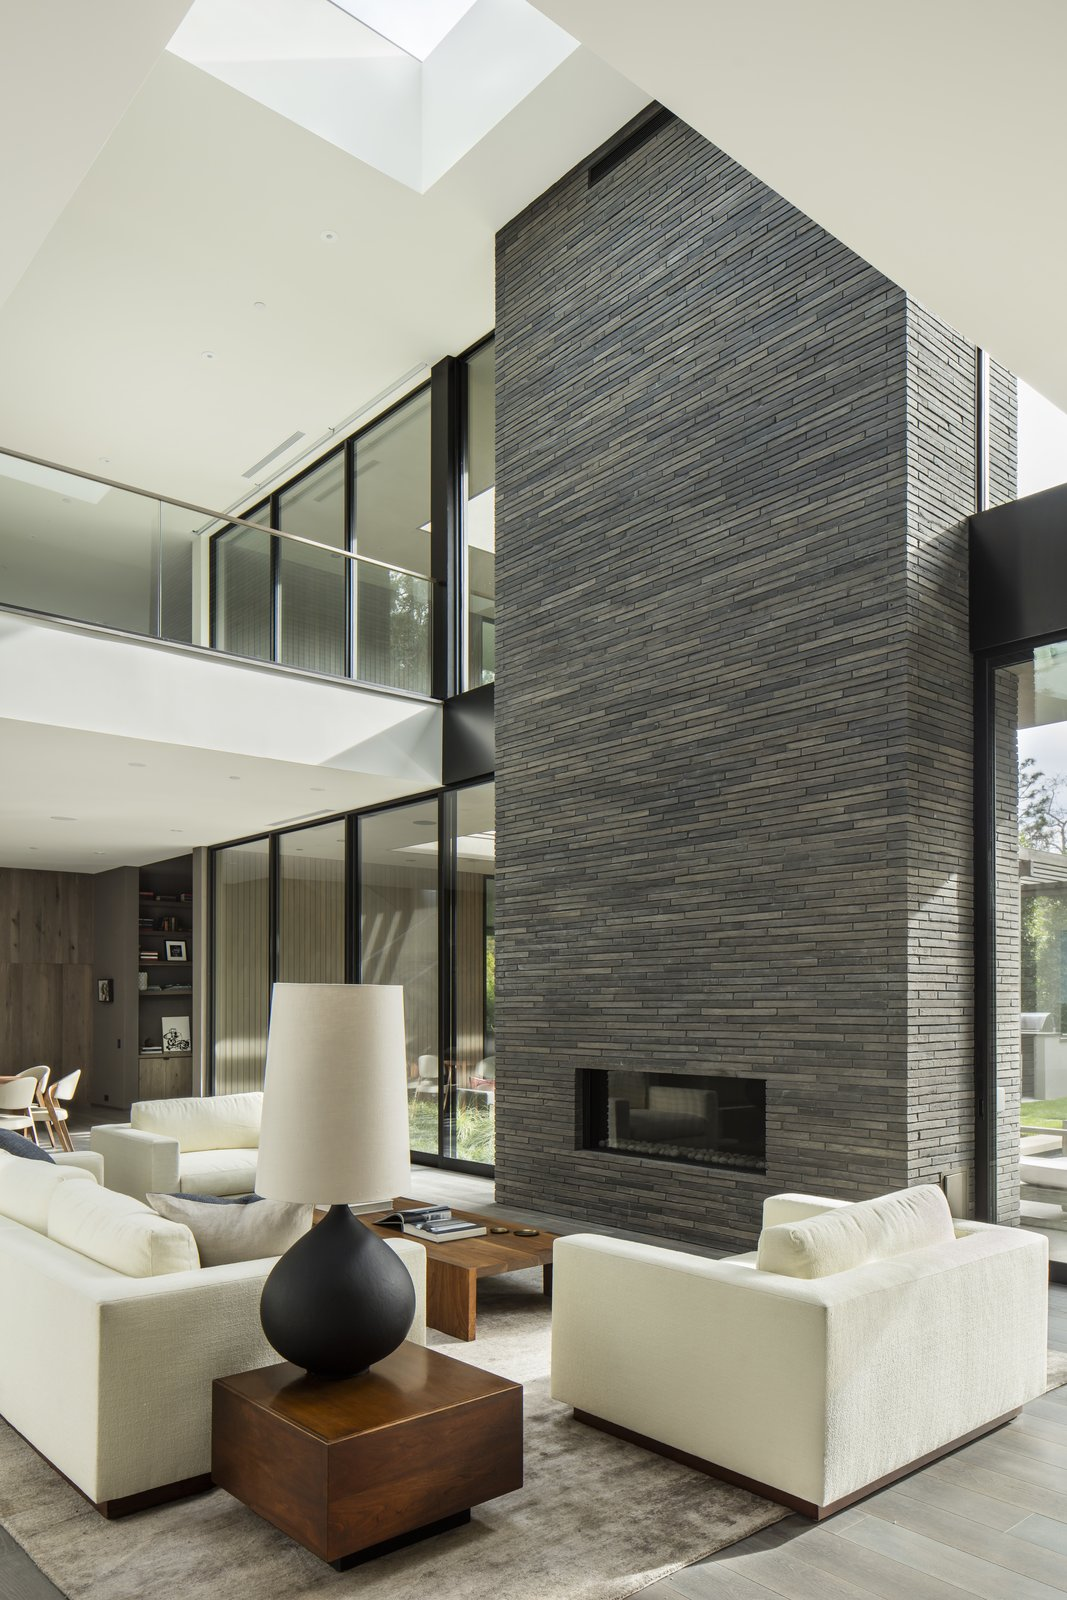 Living, Sofa, End Tables, Chair, Coffee Tables, Two-Sided, Medium Hardwood, Standard Layout, Rug, and Table The brick-inlay structure anchors the open-plan living room.  Best Living Two-Sided Sofa Photos from Live Large in This Marmol Radziner–Designed Home That's Asking $16.9M